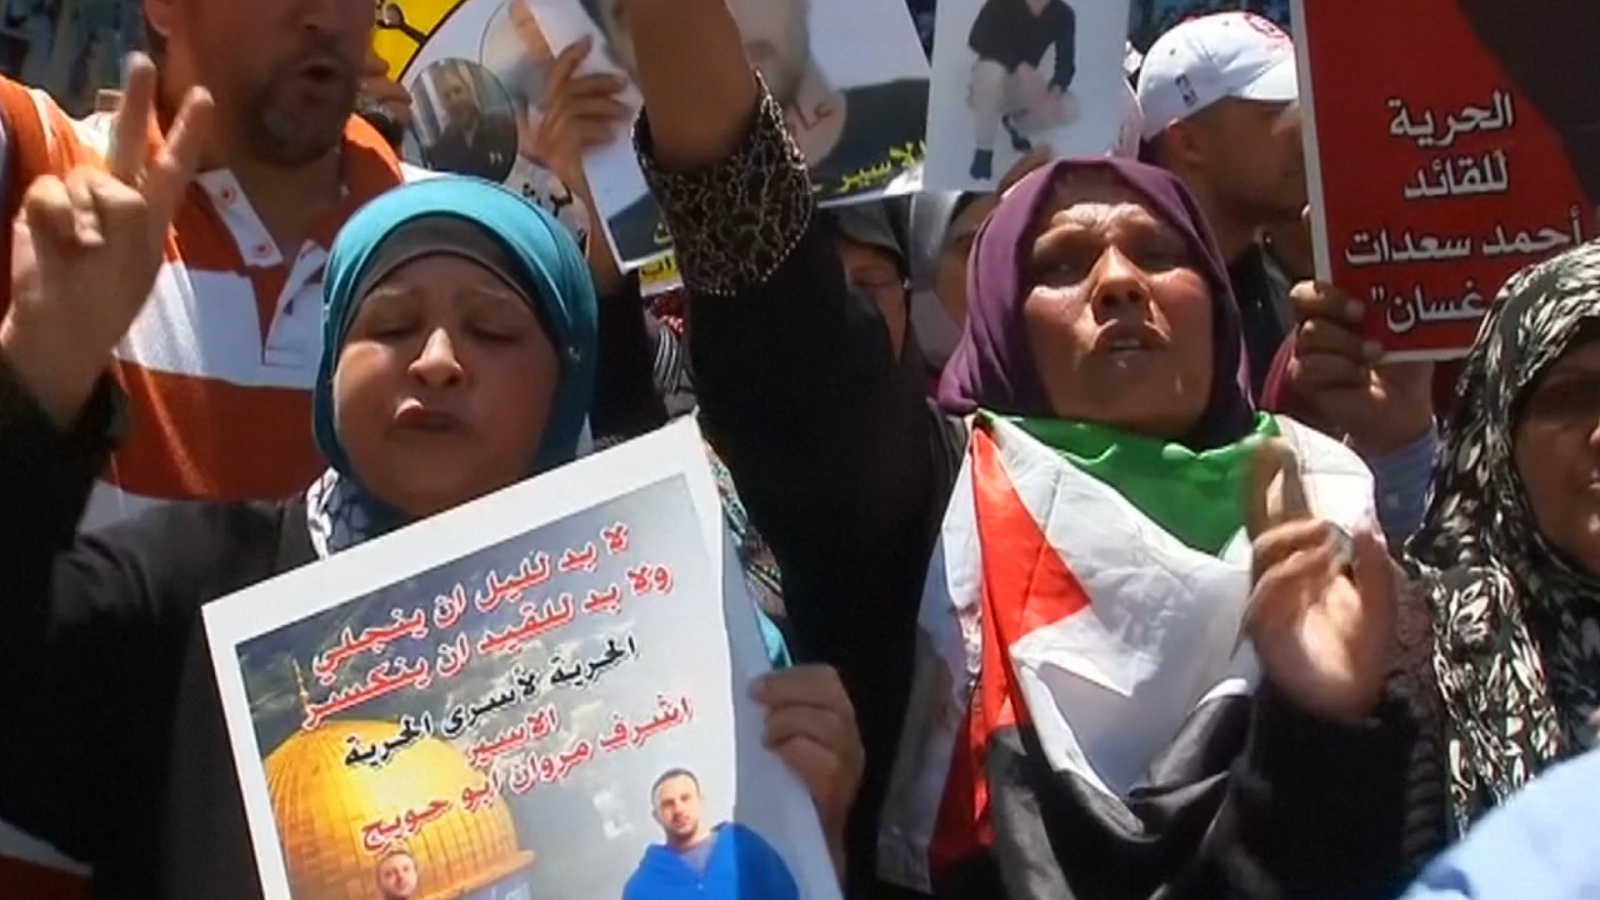 Palestinian Prisoners End Mass Hunger Strike After Securing Concessions